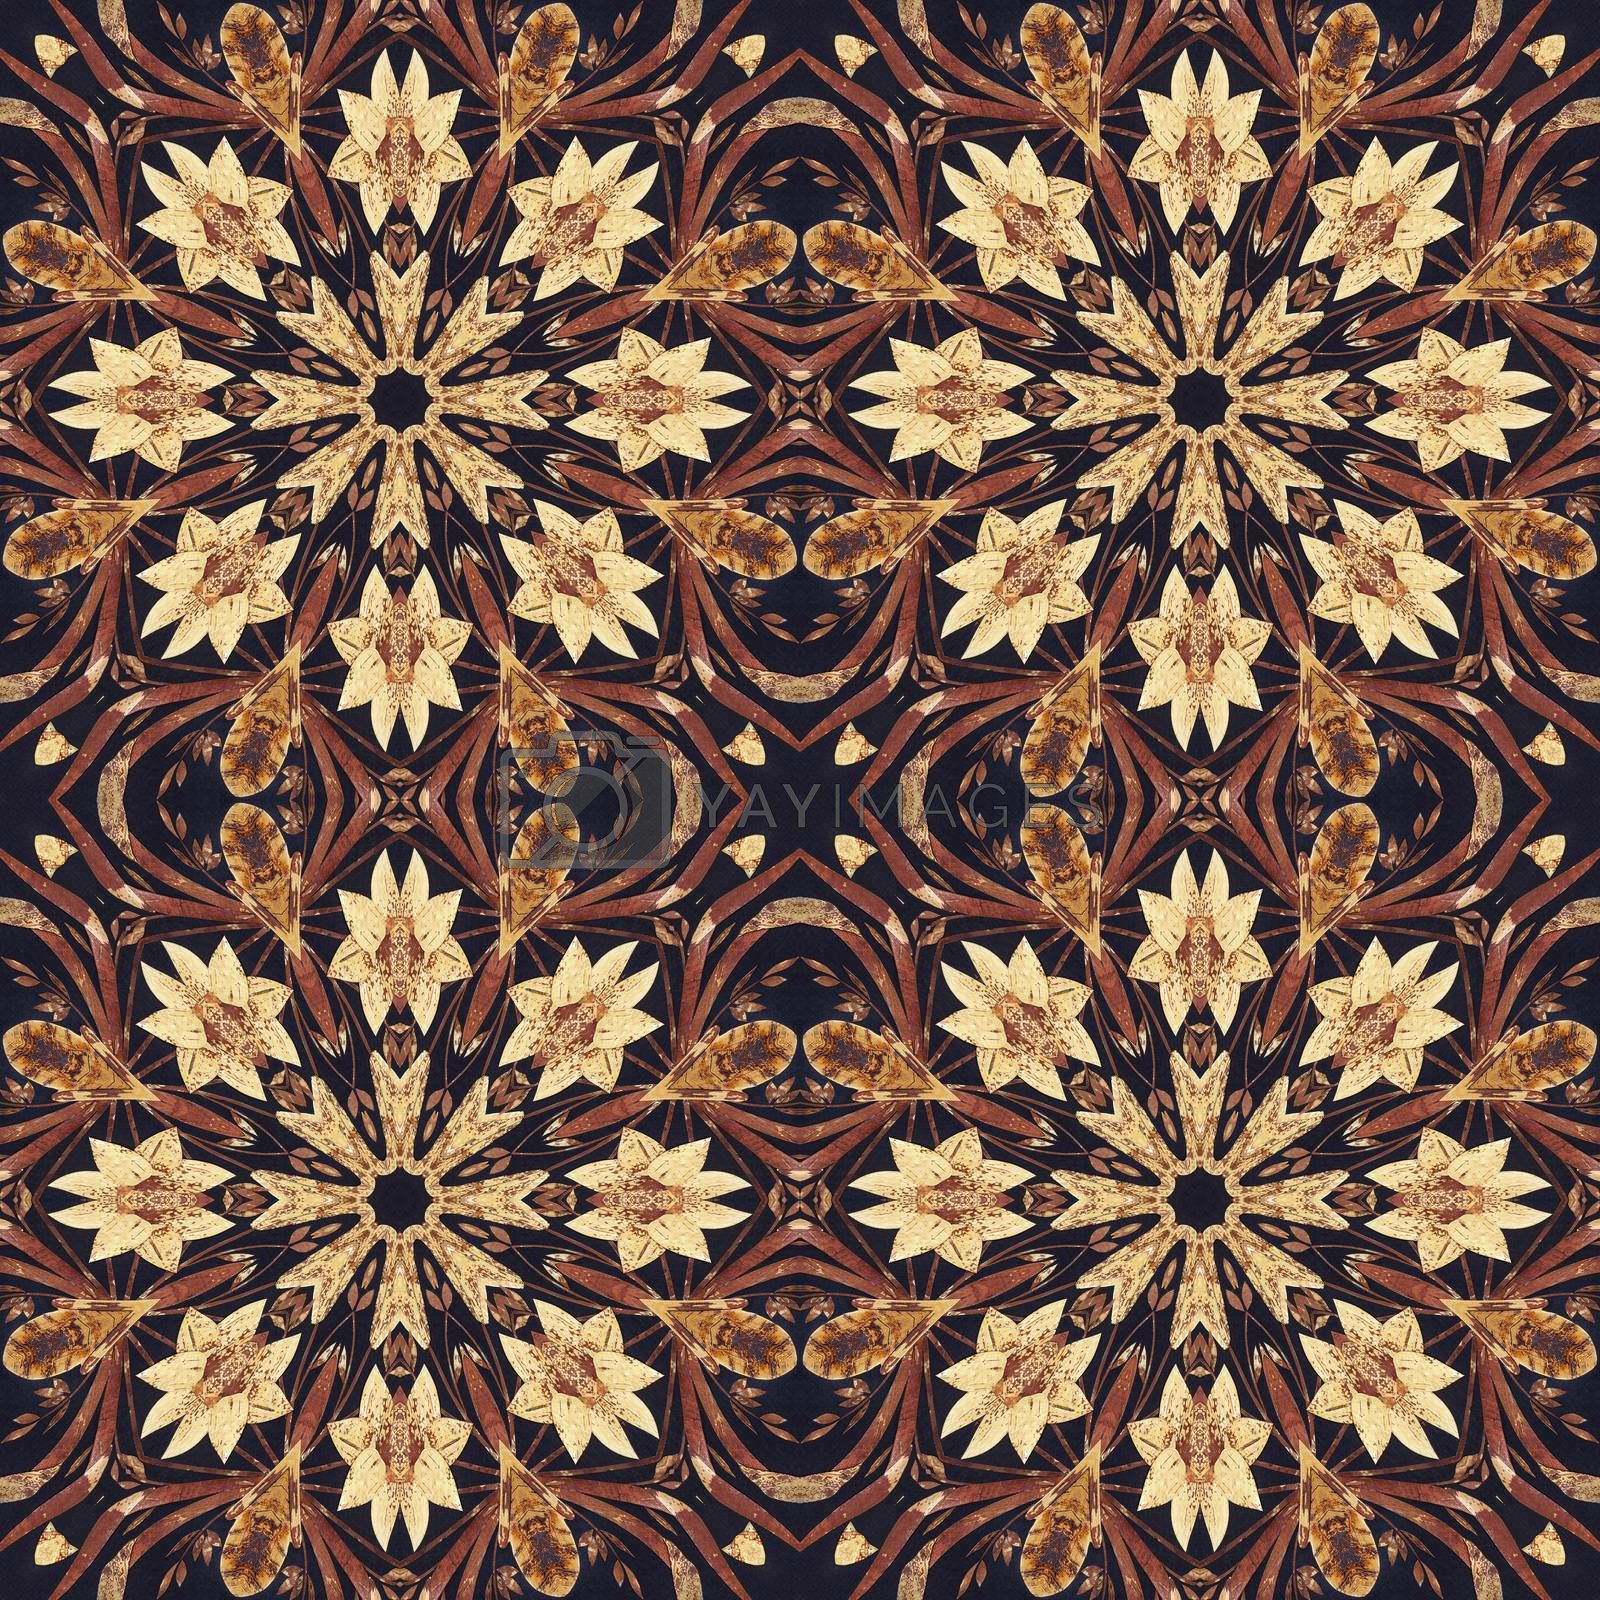 Royalty free image of Seamless floral ornament, bark on fabric by alexcoolok